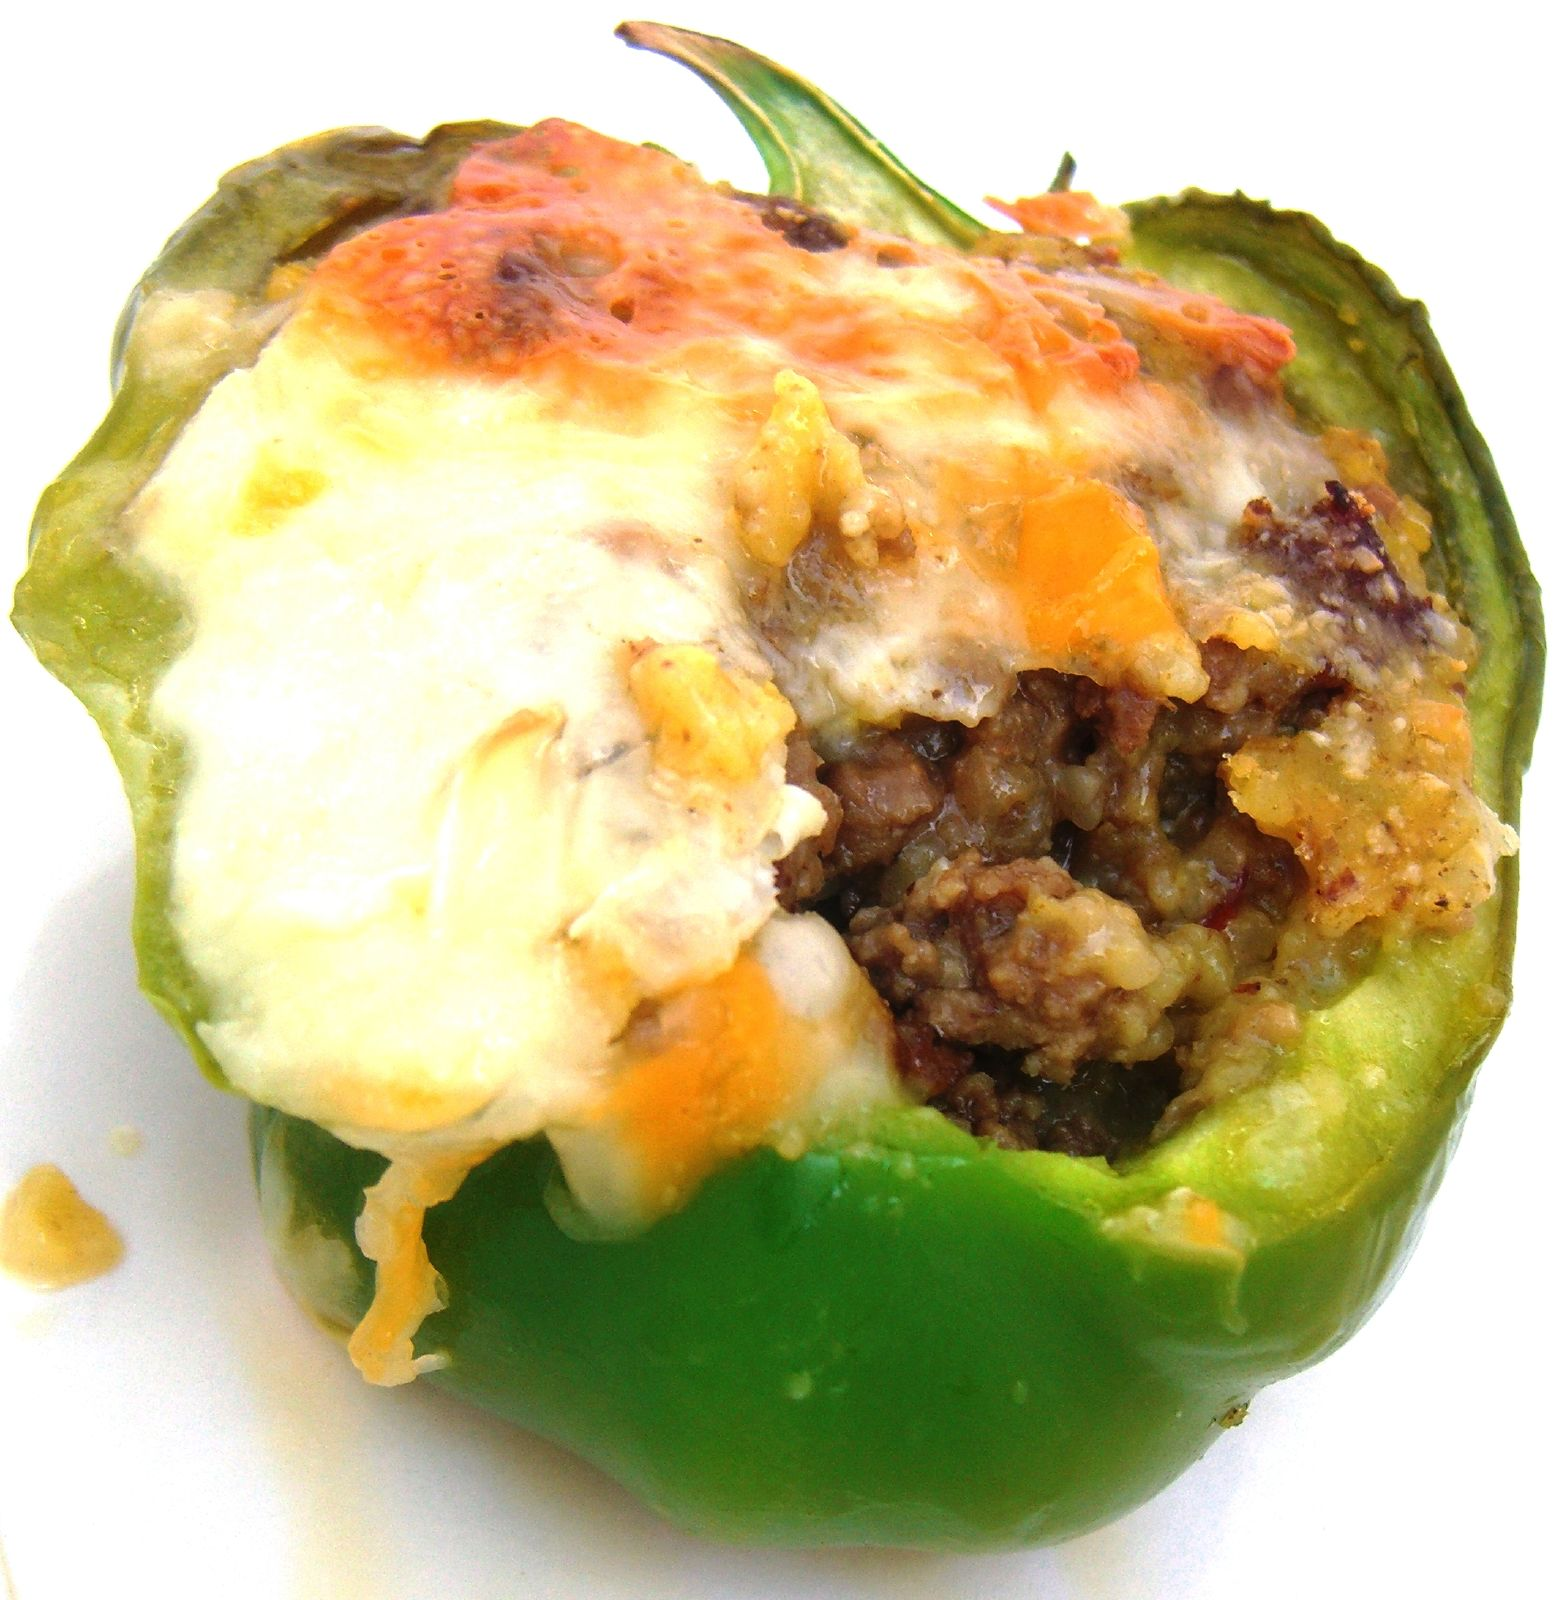 File:Stuffed pepper.jpg - Wikipedia, the free encyclopedia